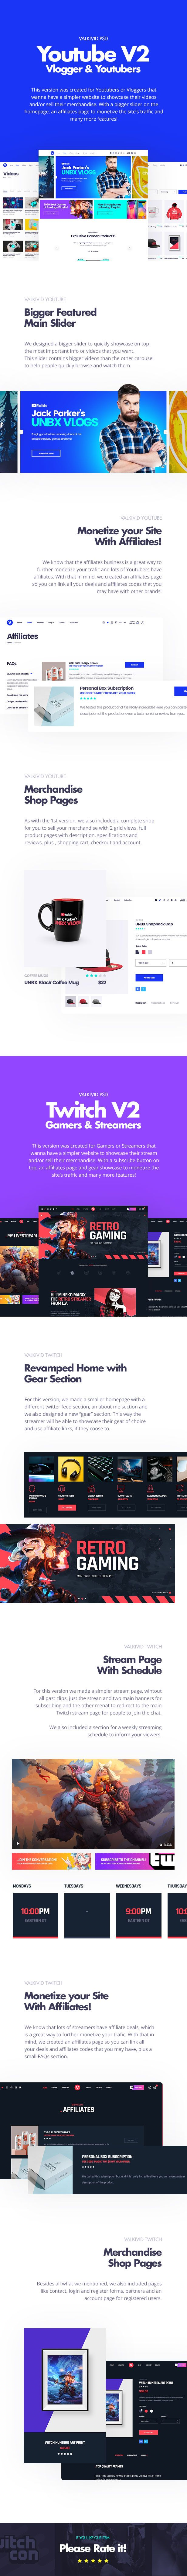 Valkivid - Streamer and Youtuber PSD Template - 12